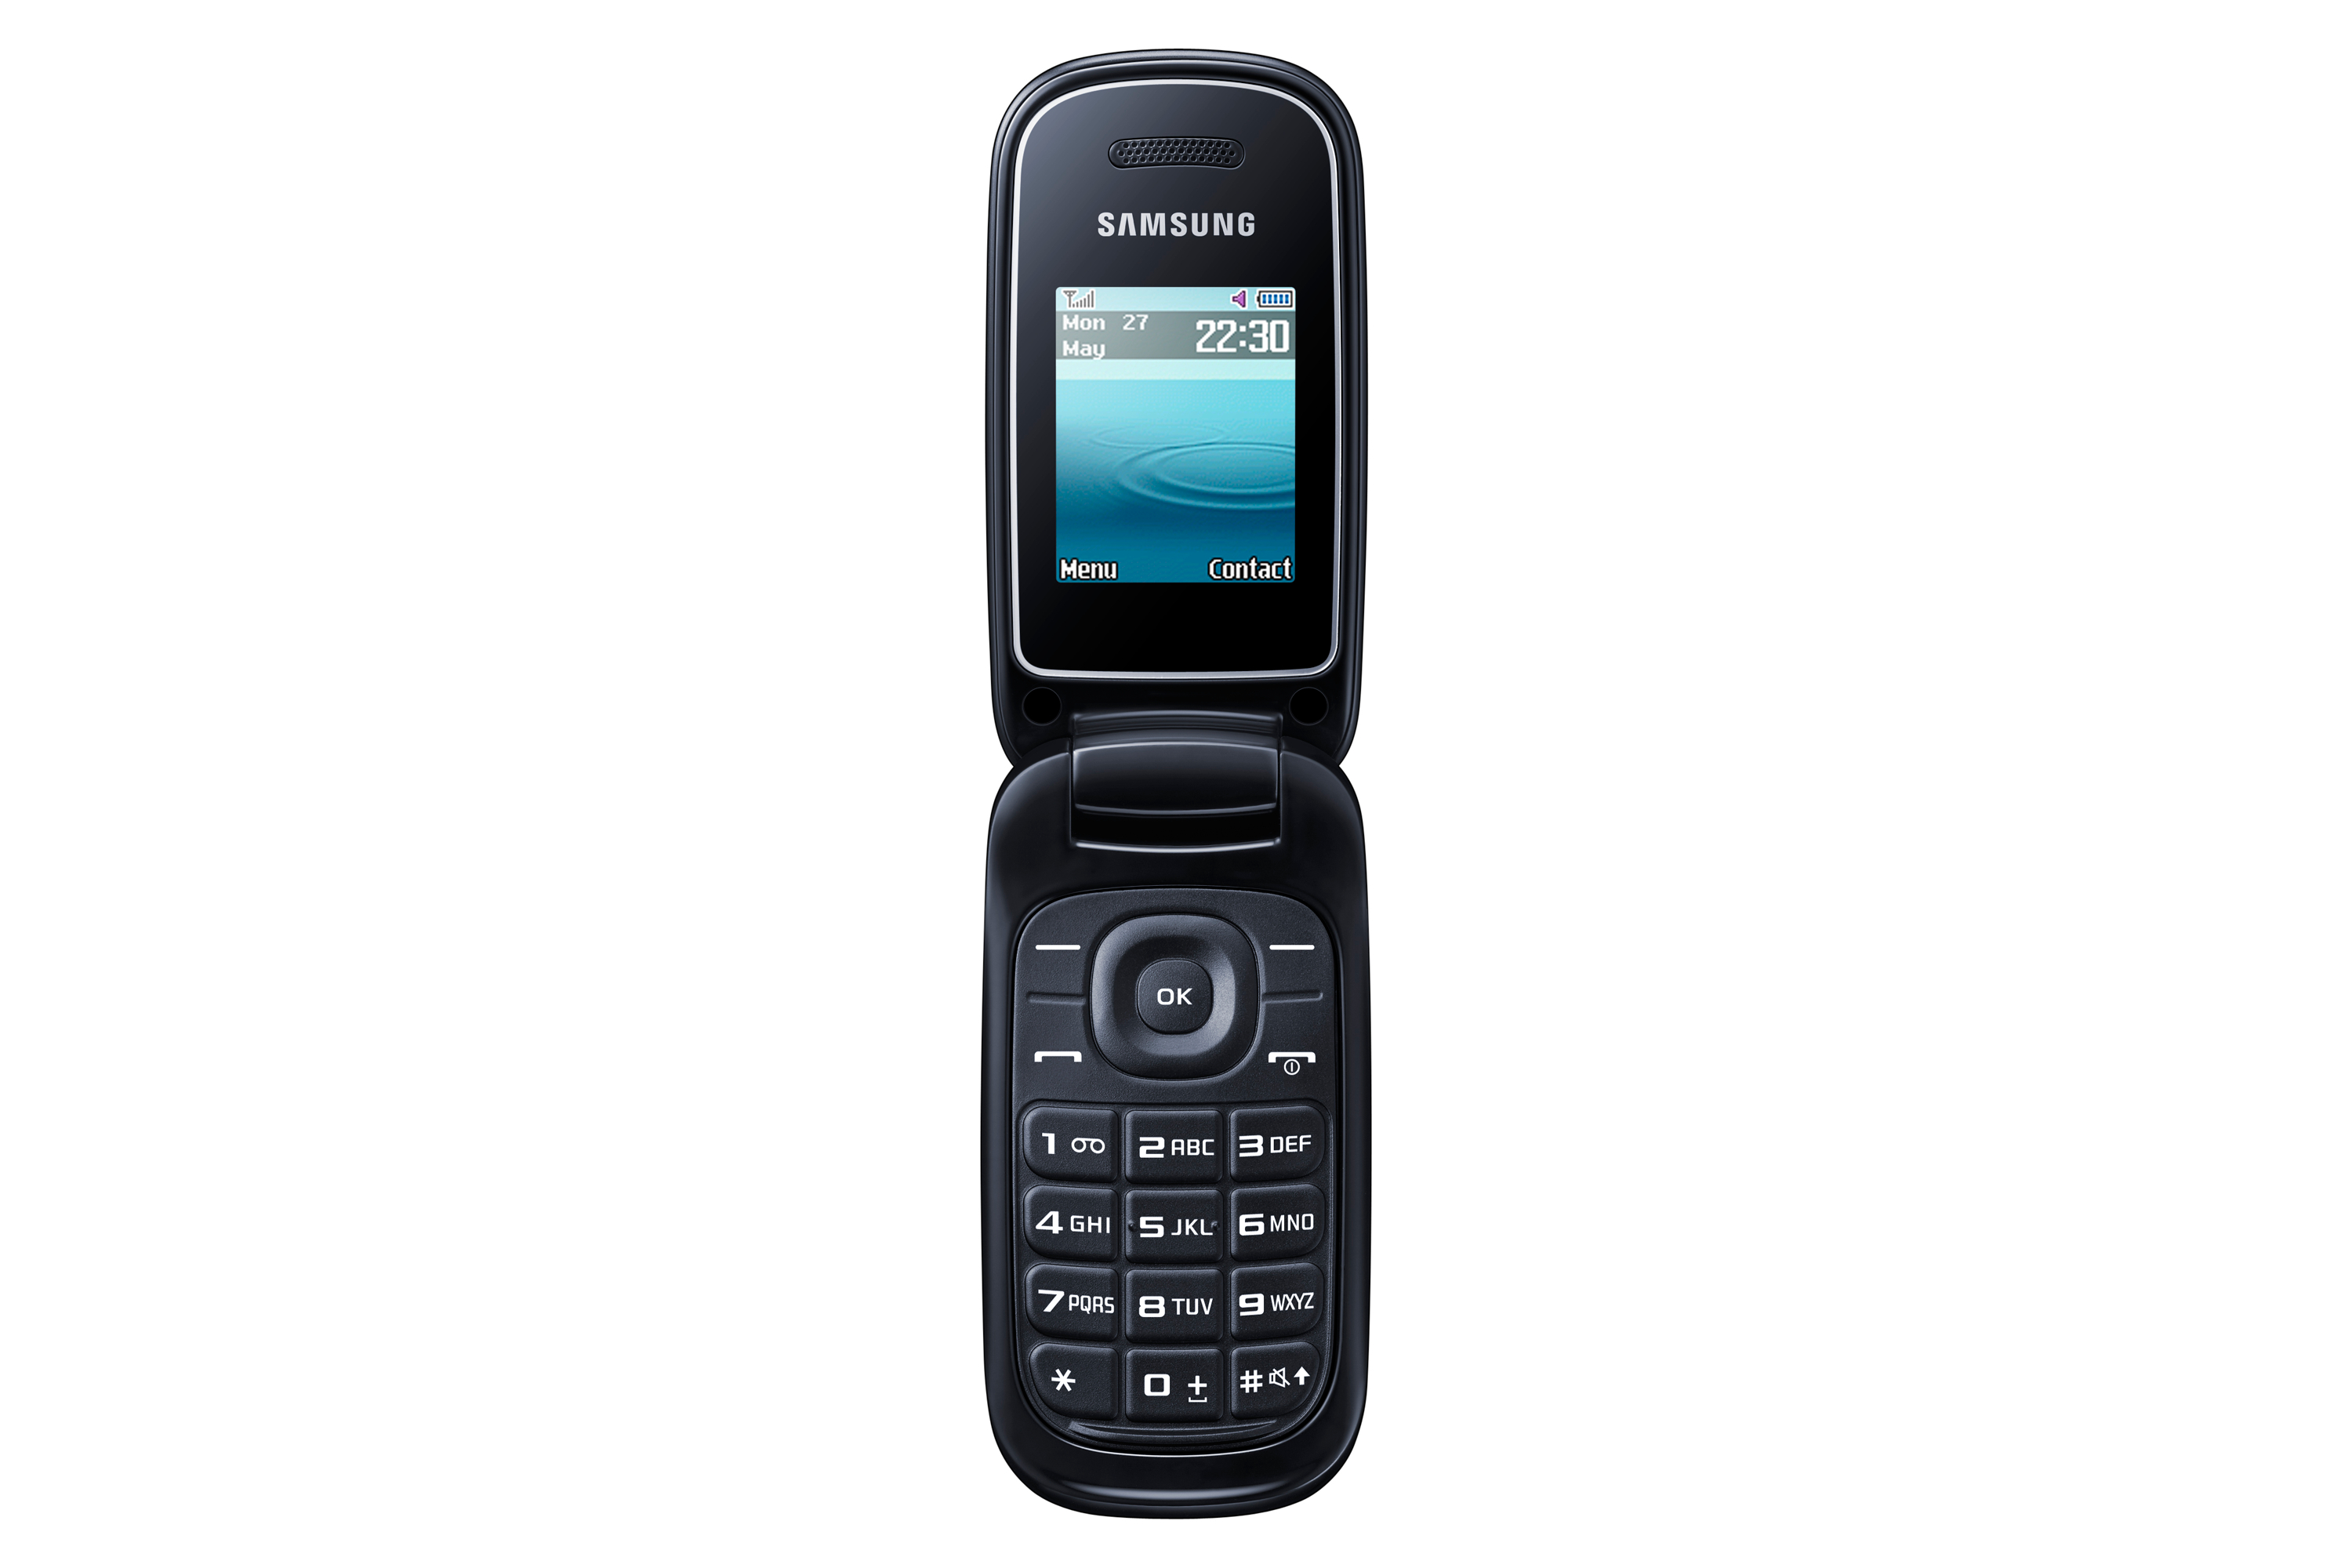 samsung e1270 black flip mobile phone locked to virgin. Black Bedroom Furniture Sets. Home Design Ideas